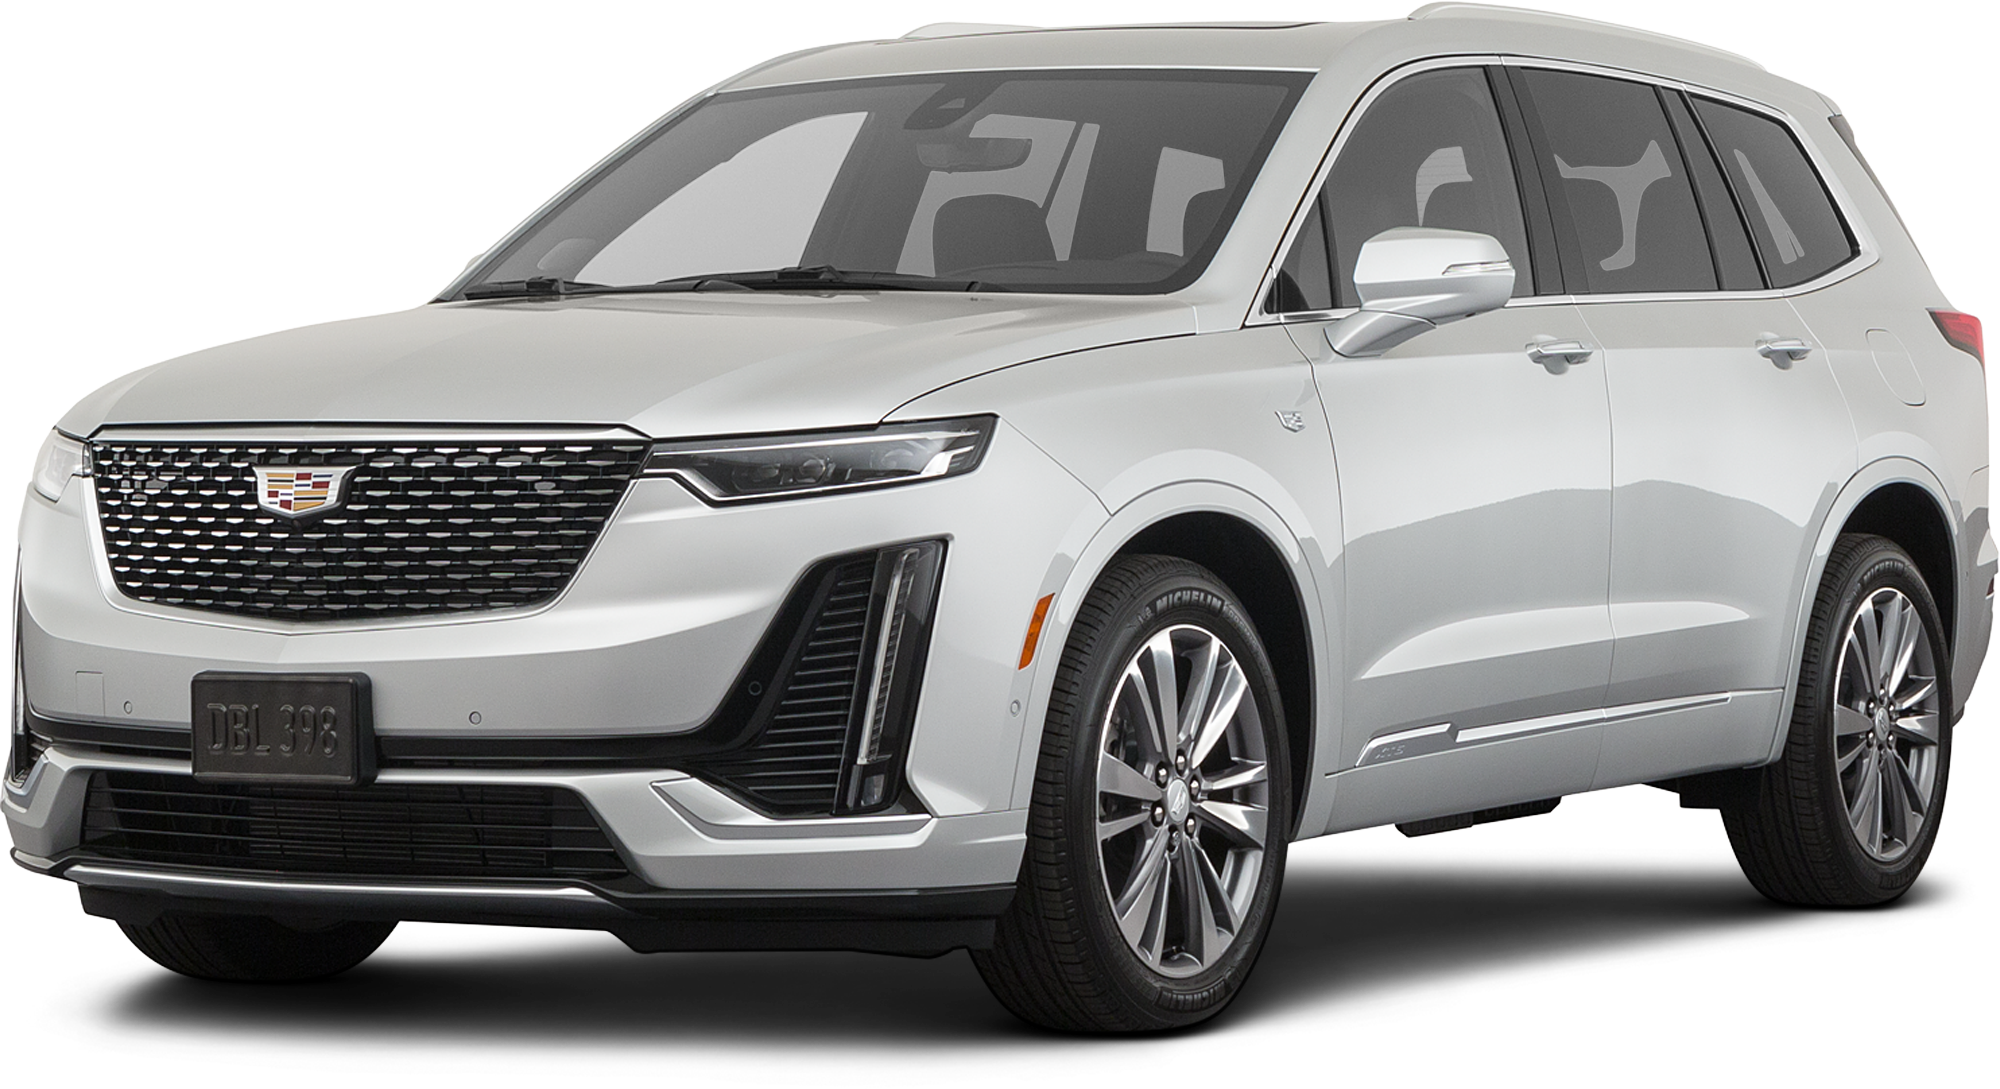 2021 CADILLAC XT6 Lease & Specials Offers in Atlanta